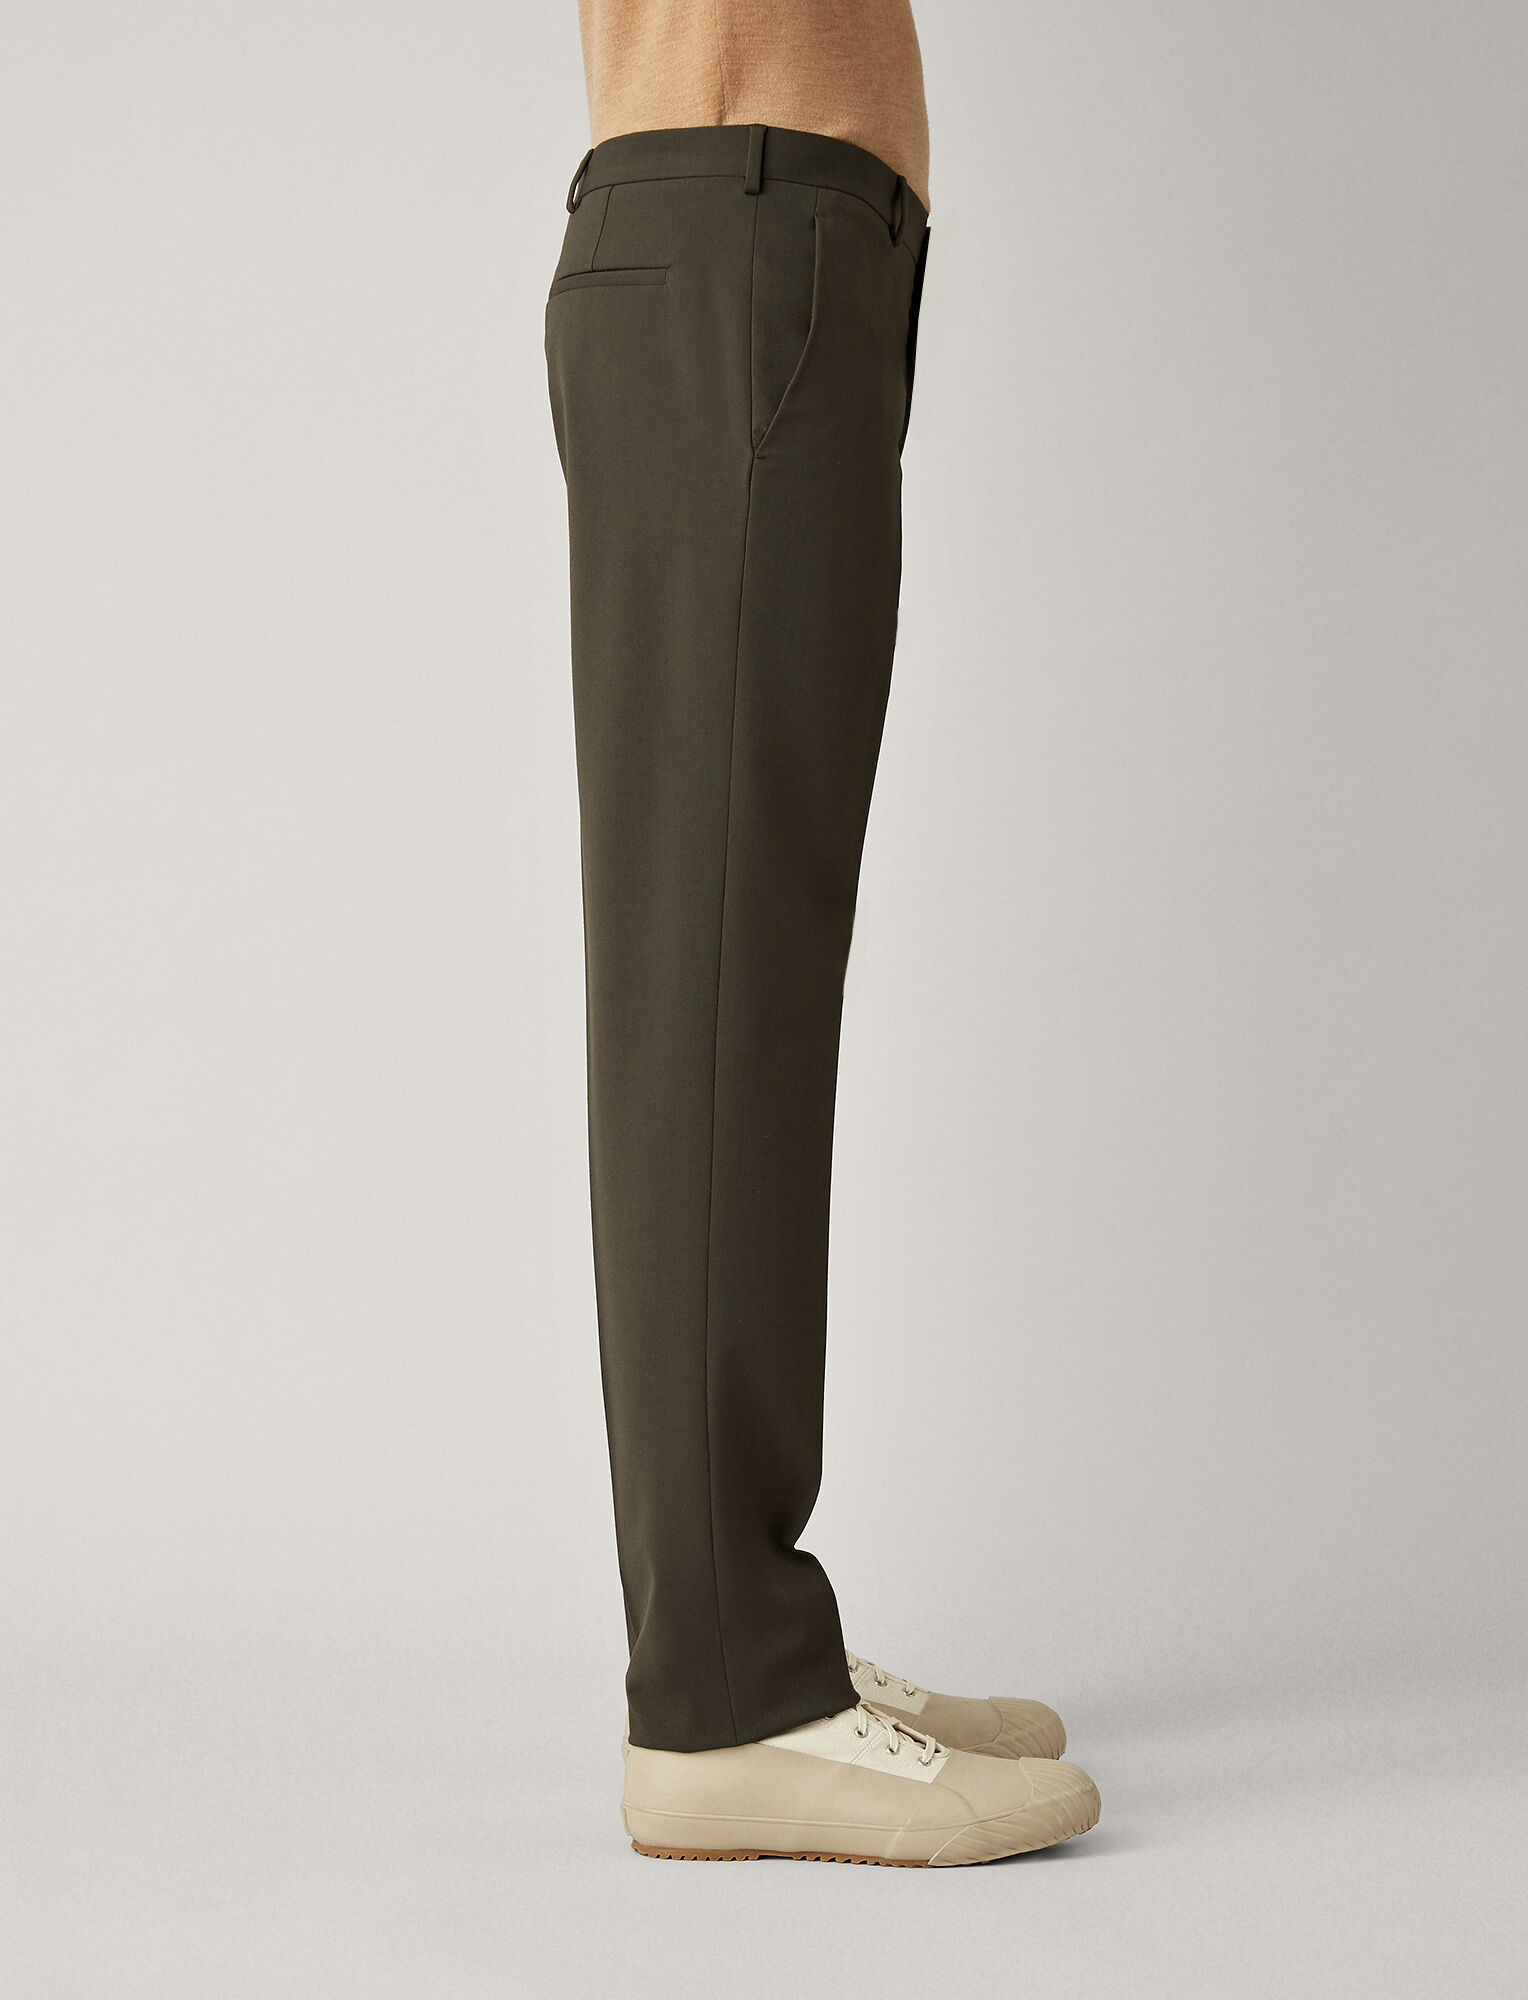 Joseph, Jack Techno Wool Stretch Trousers, in MILITARY